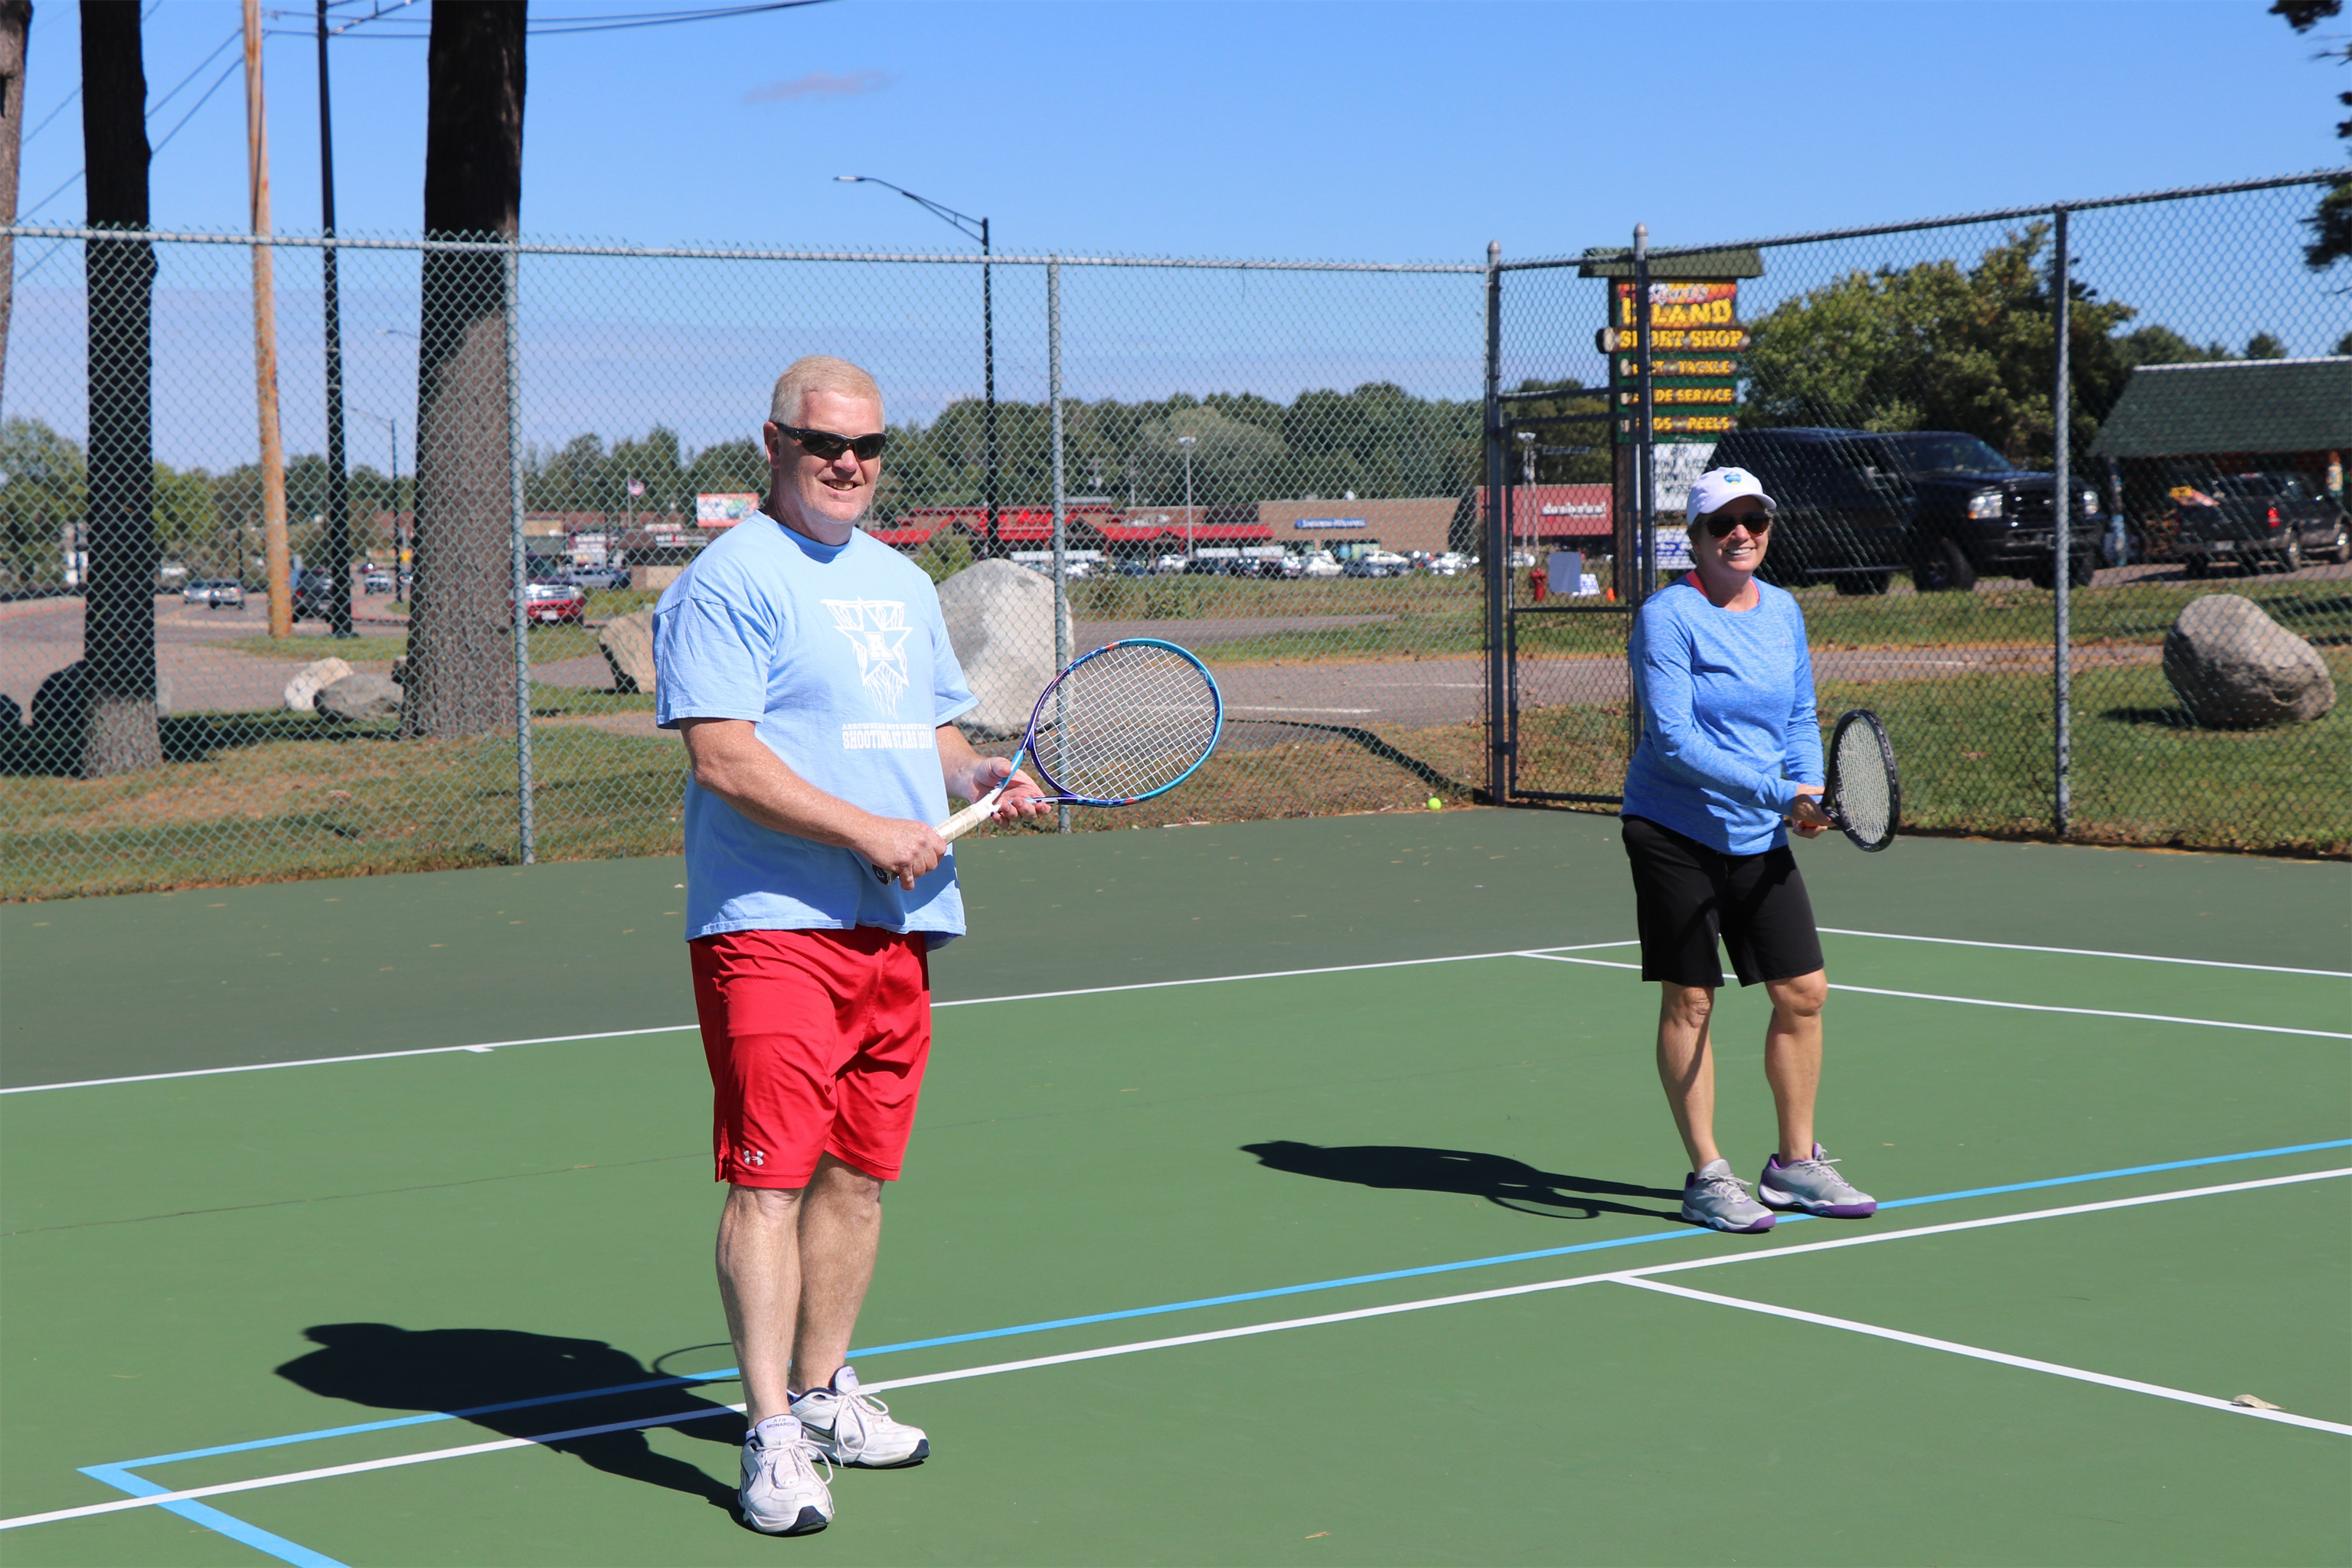 Playing tennis at Torpy Park in Minocqua. Kim Johnson photo